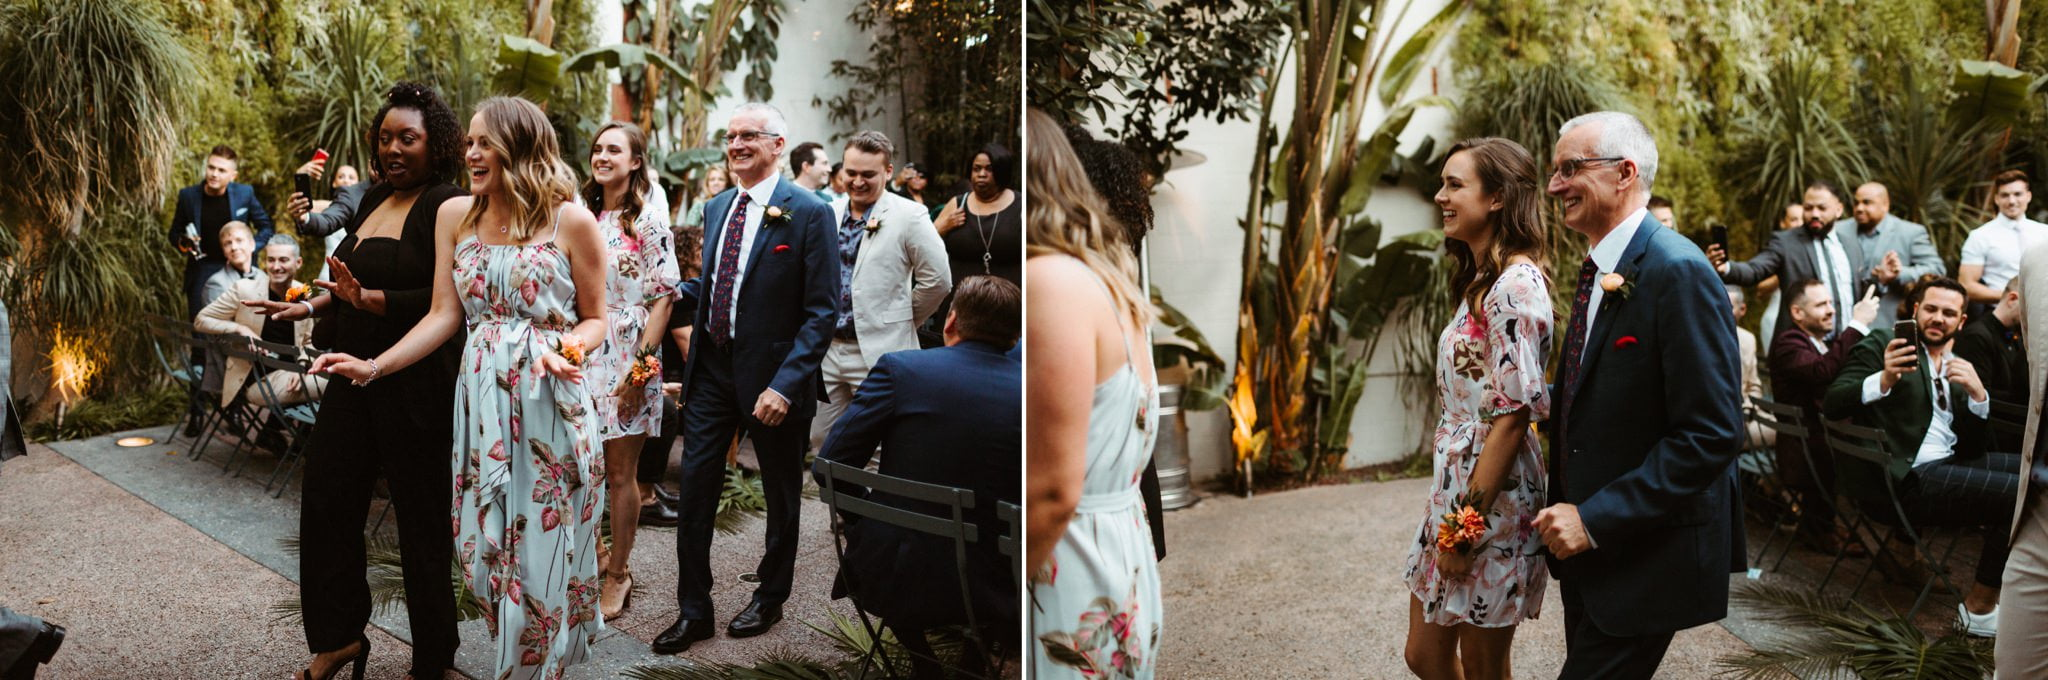 dtla wedding photographer 093